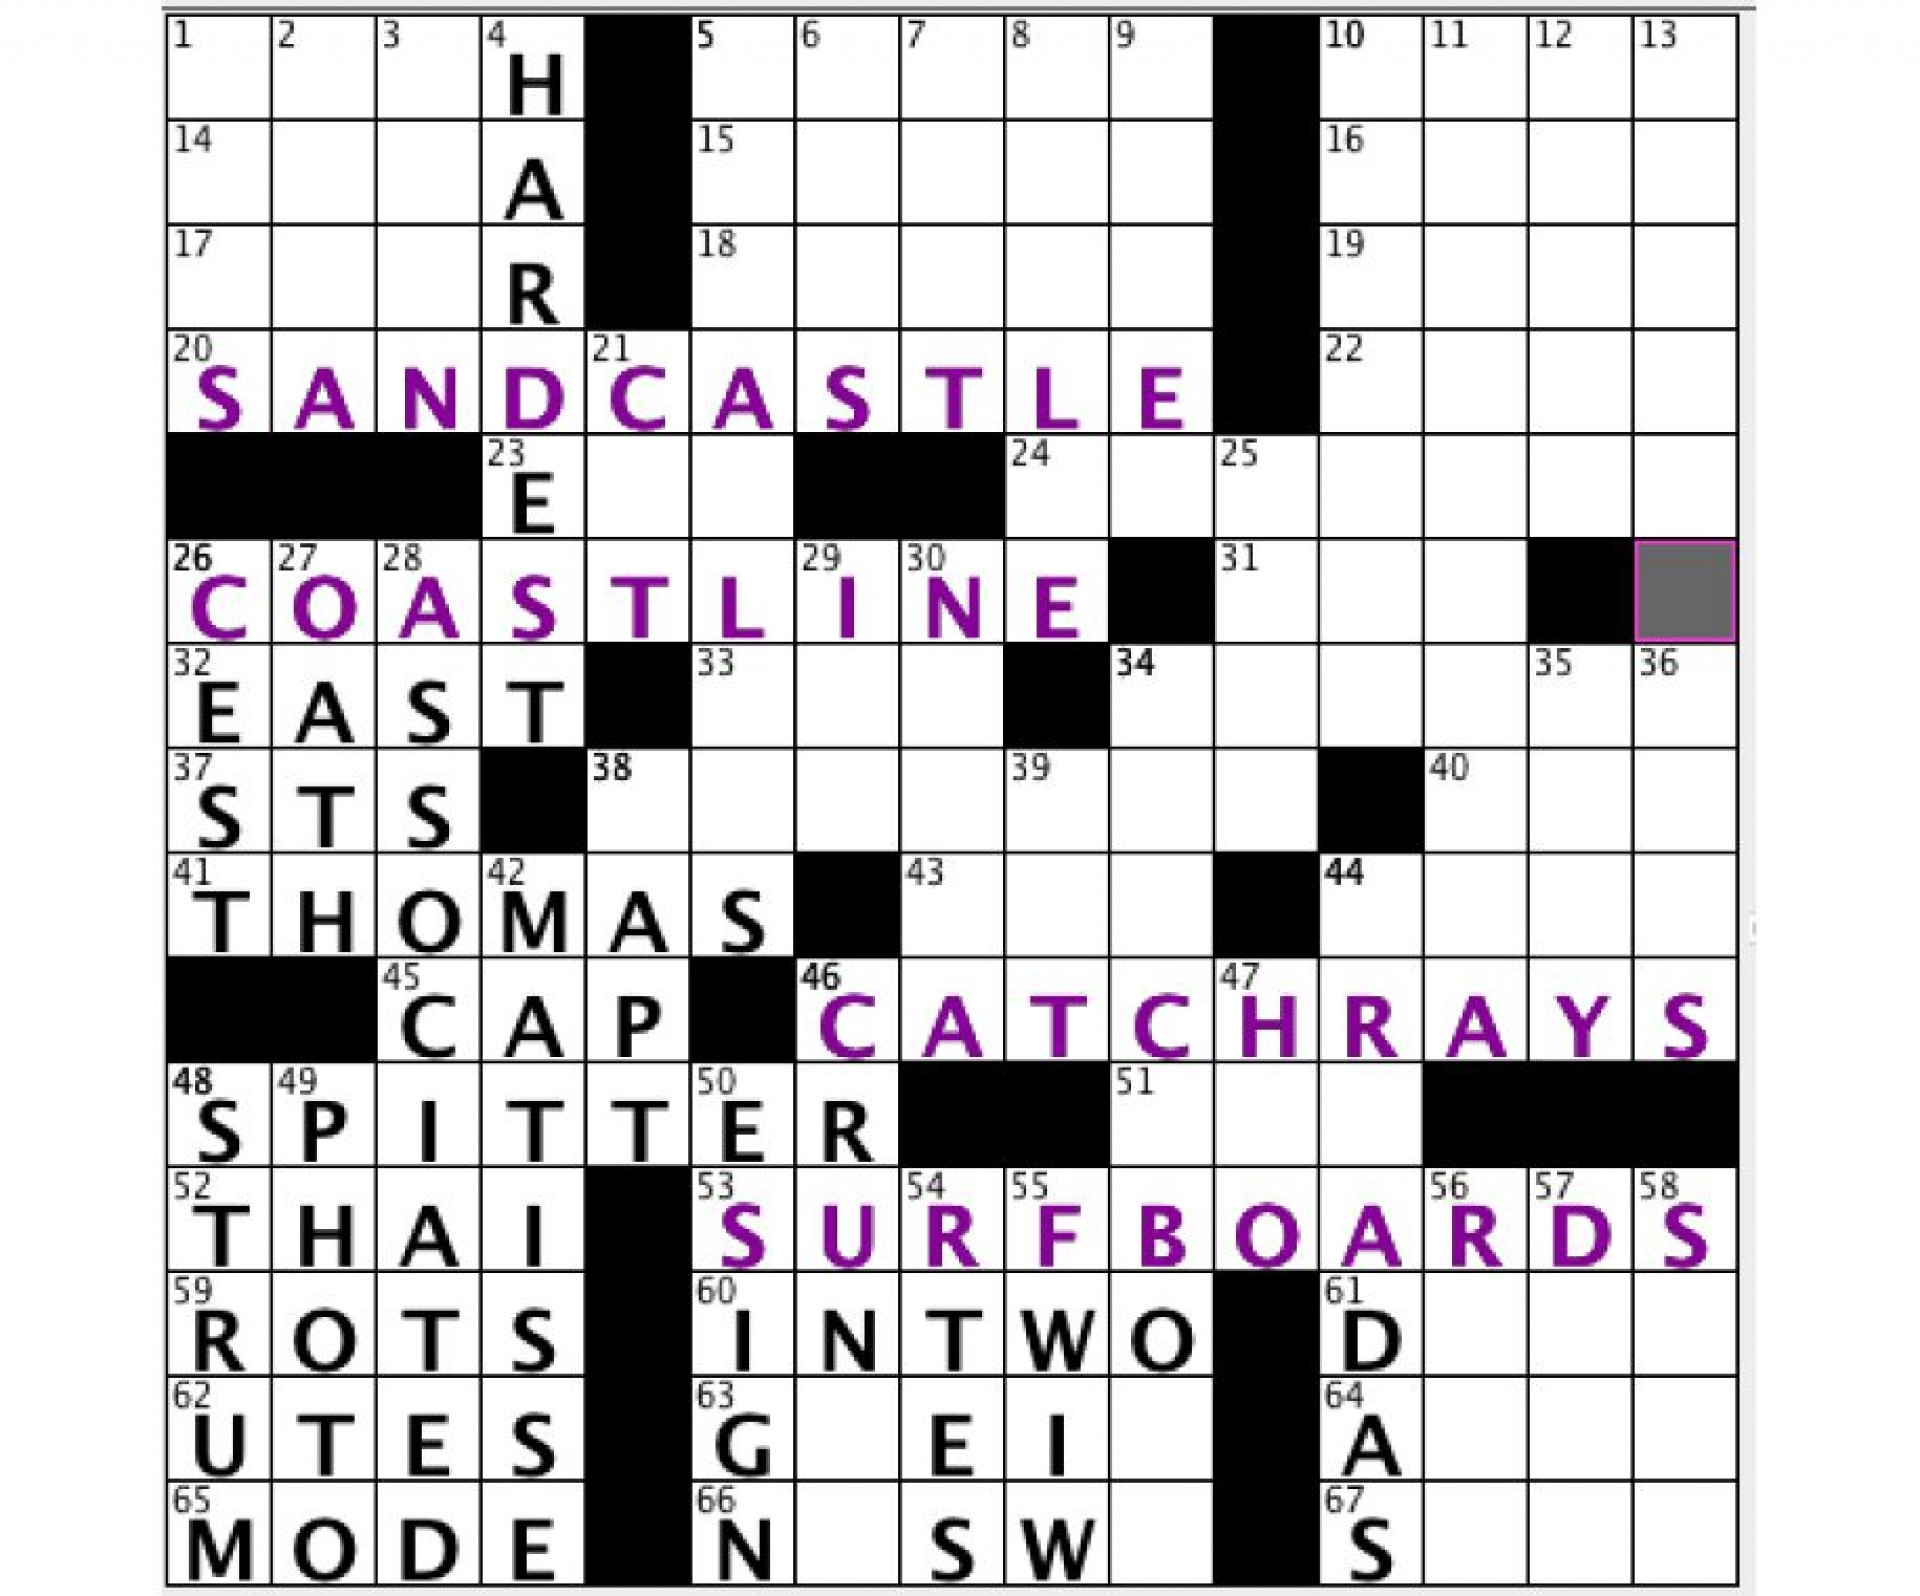 000 Unforgettable Robust Crossword Clue Sample  Strong Drink 6 Letter Reliable Nyt Vigorou 81920